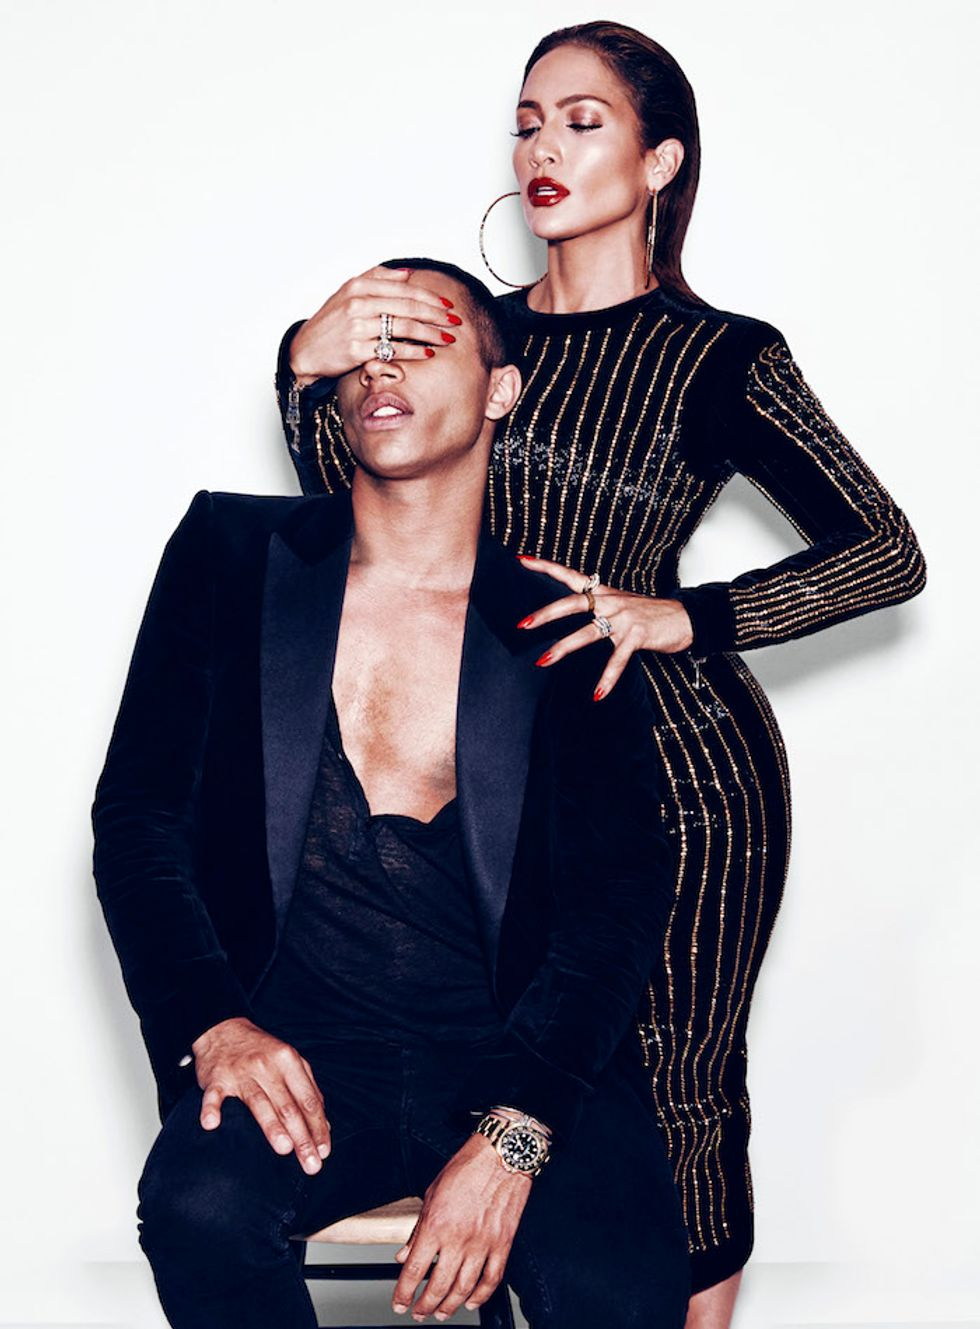 J.Lo and Balmain's Olivier Rousteing On Luxury, Race and Feminism